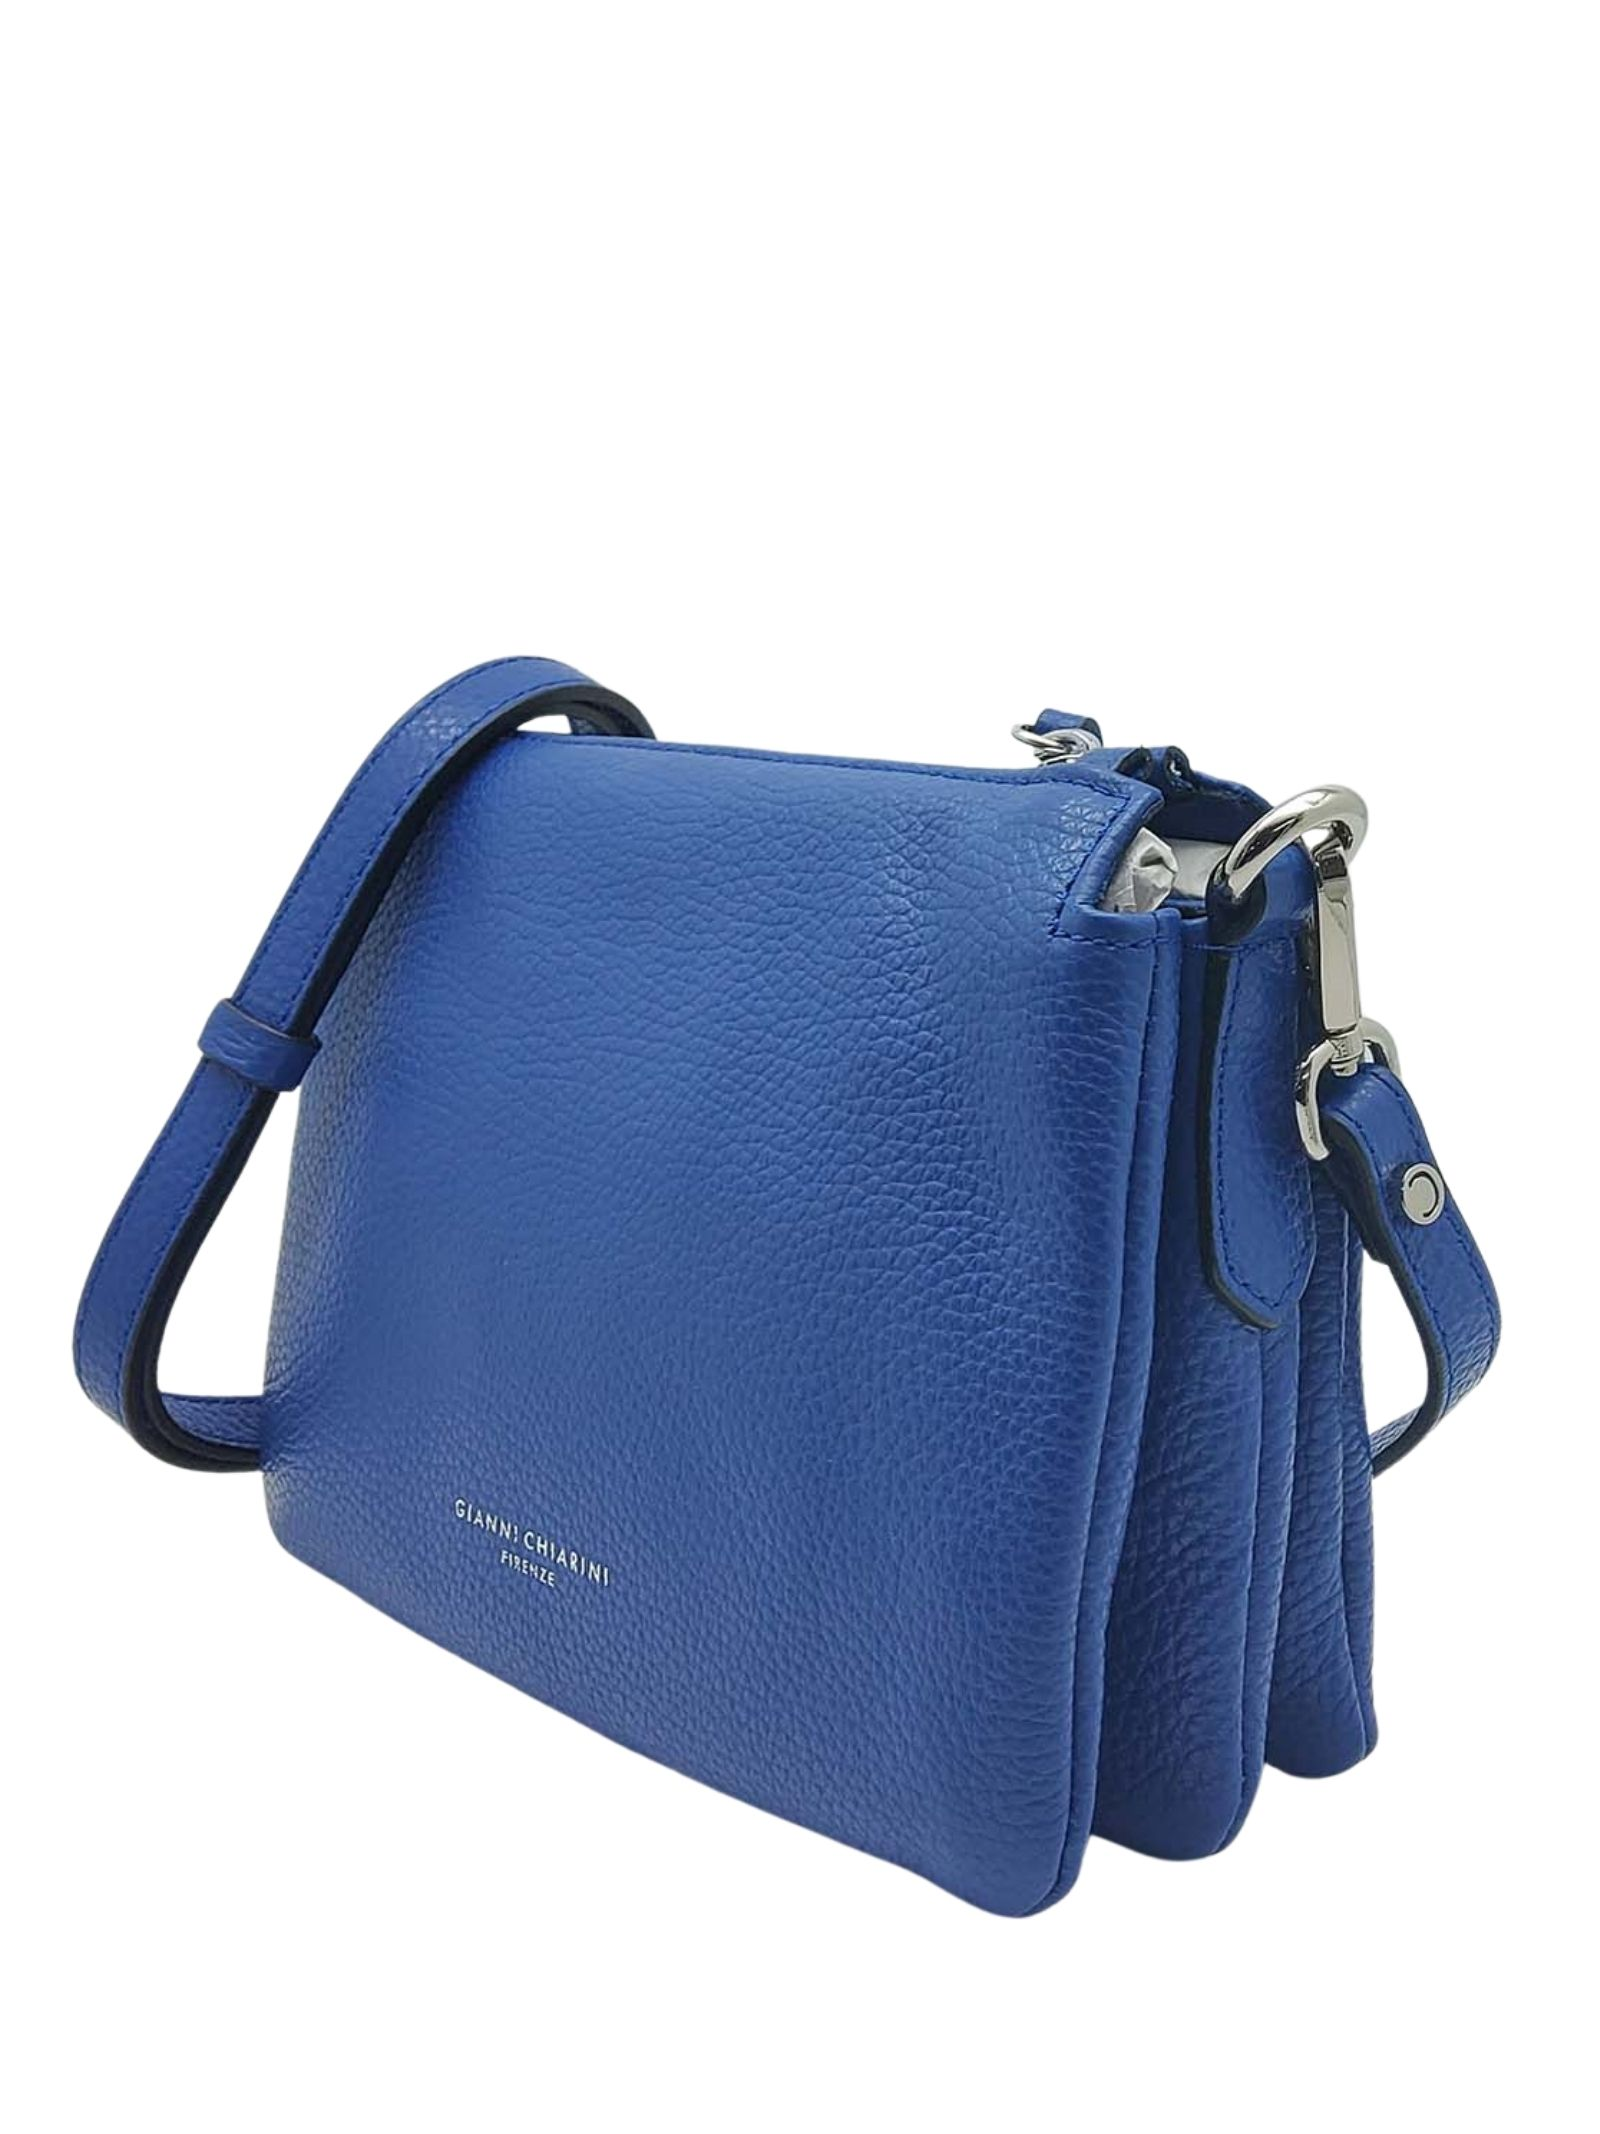 Women's Bag Cross-body Clutch Three In Blue Hammered Leather With Adjustable And Detachable Cross-body Strap Gianni Chiarini   Bags and backpacks   BS43626241